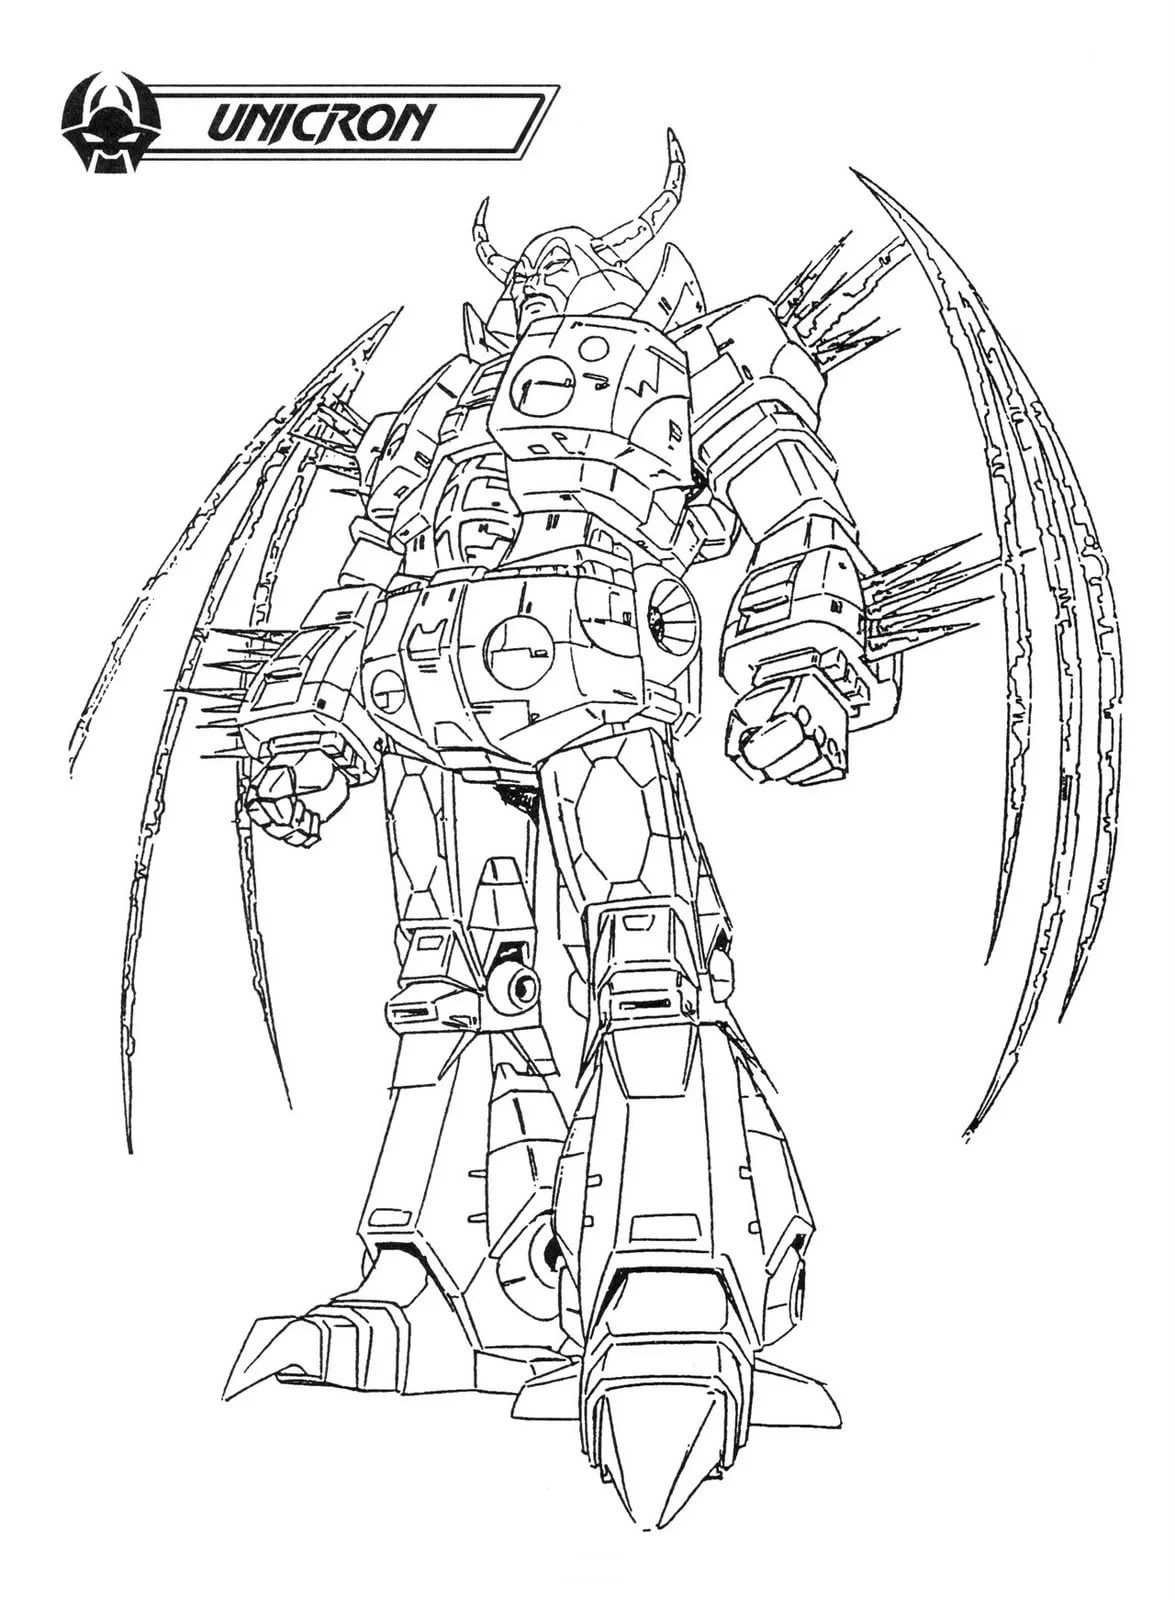 unicron transformers coloring pages unicron by tgping on deviantart transformers coloring unicron pages